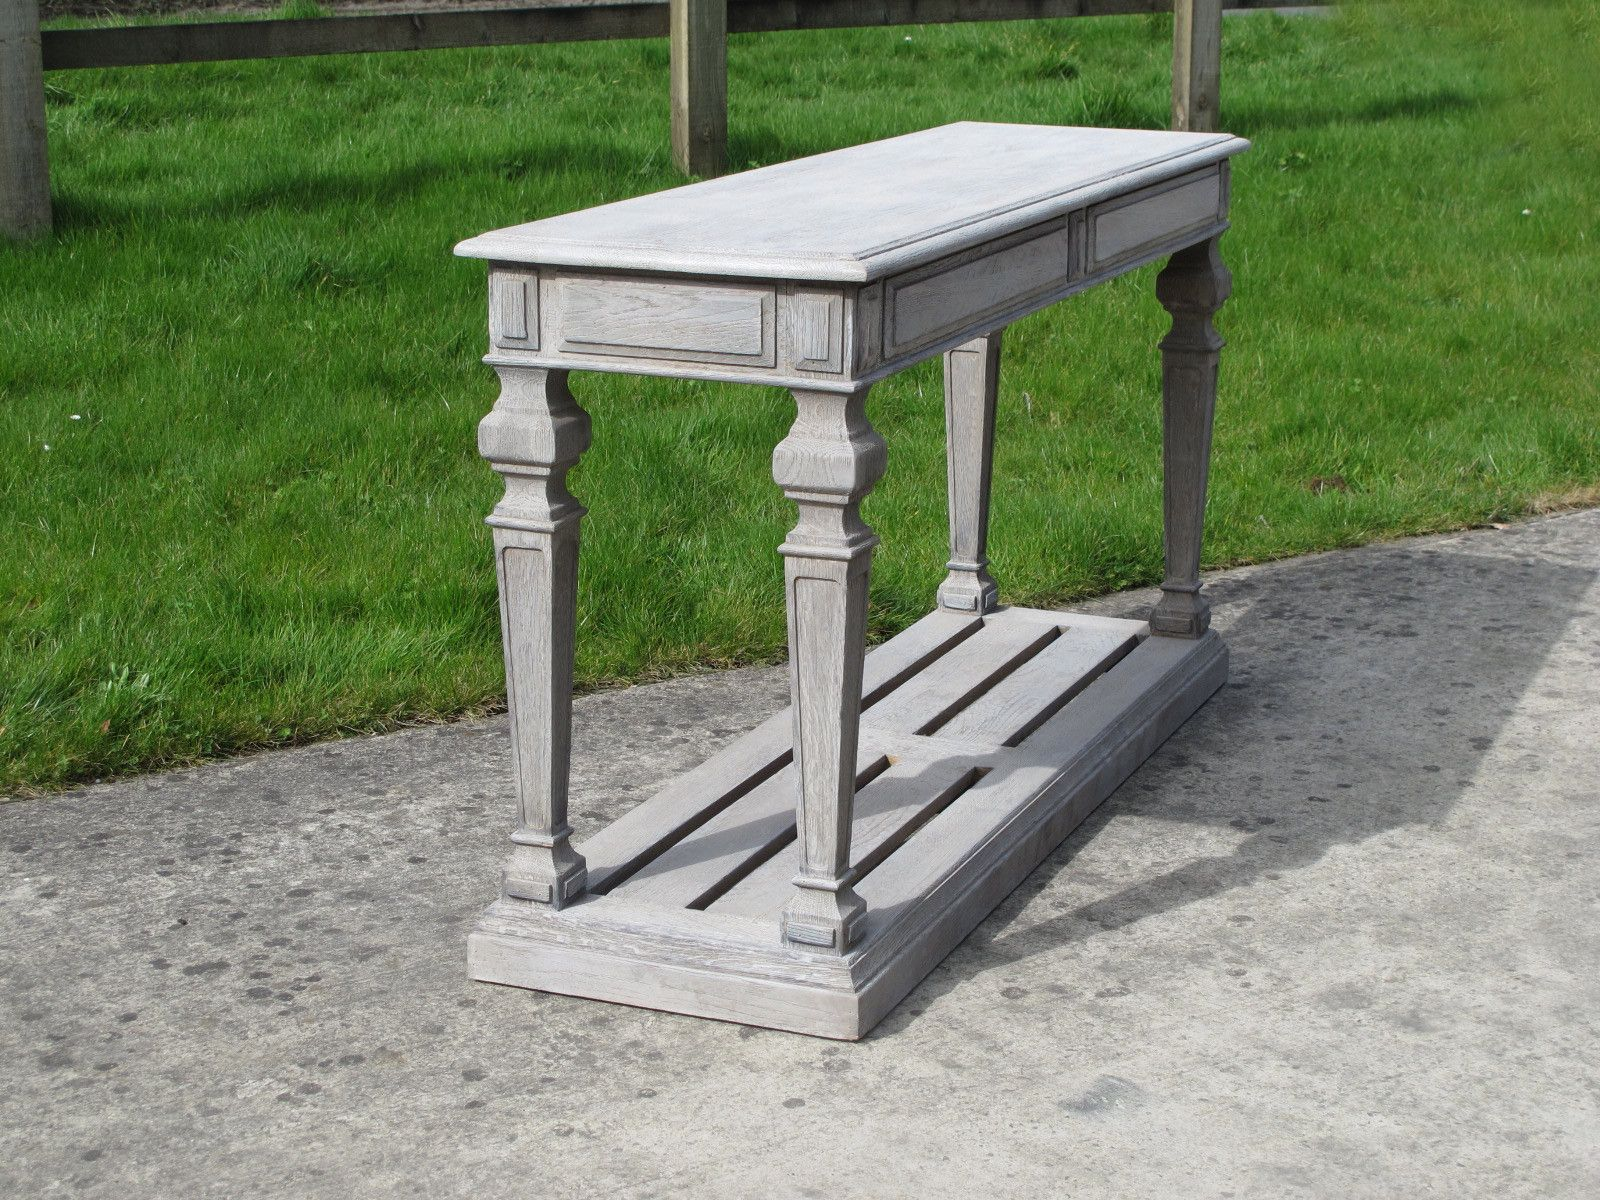 French country style console table grey limed oak finish french country style console table grey limed oak finish geotapseo Gallery